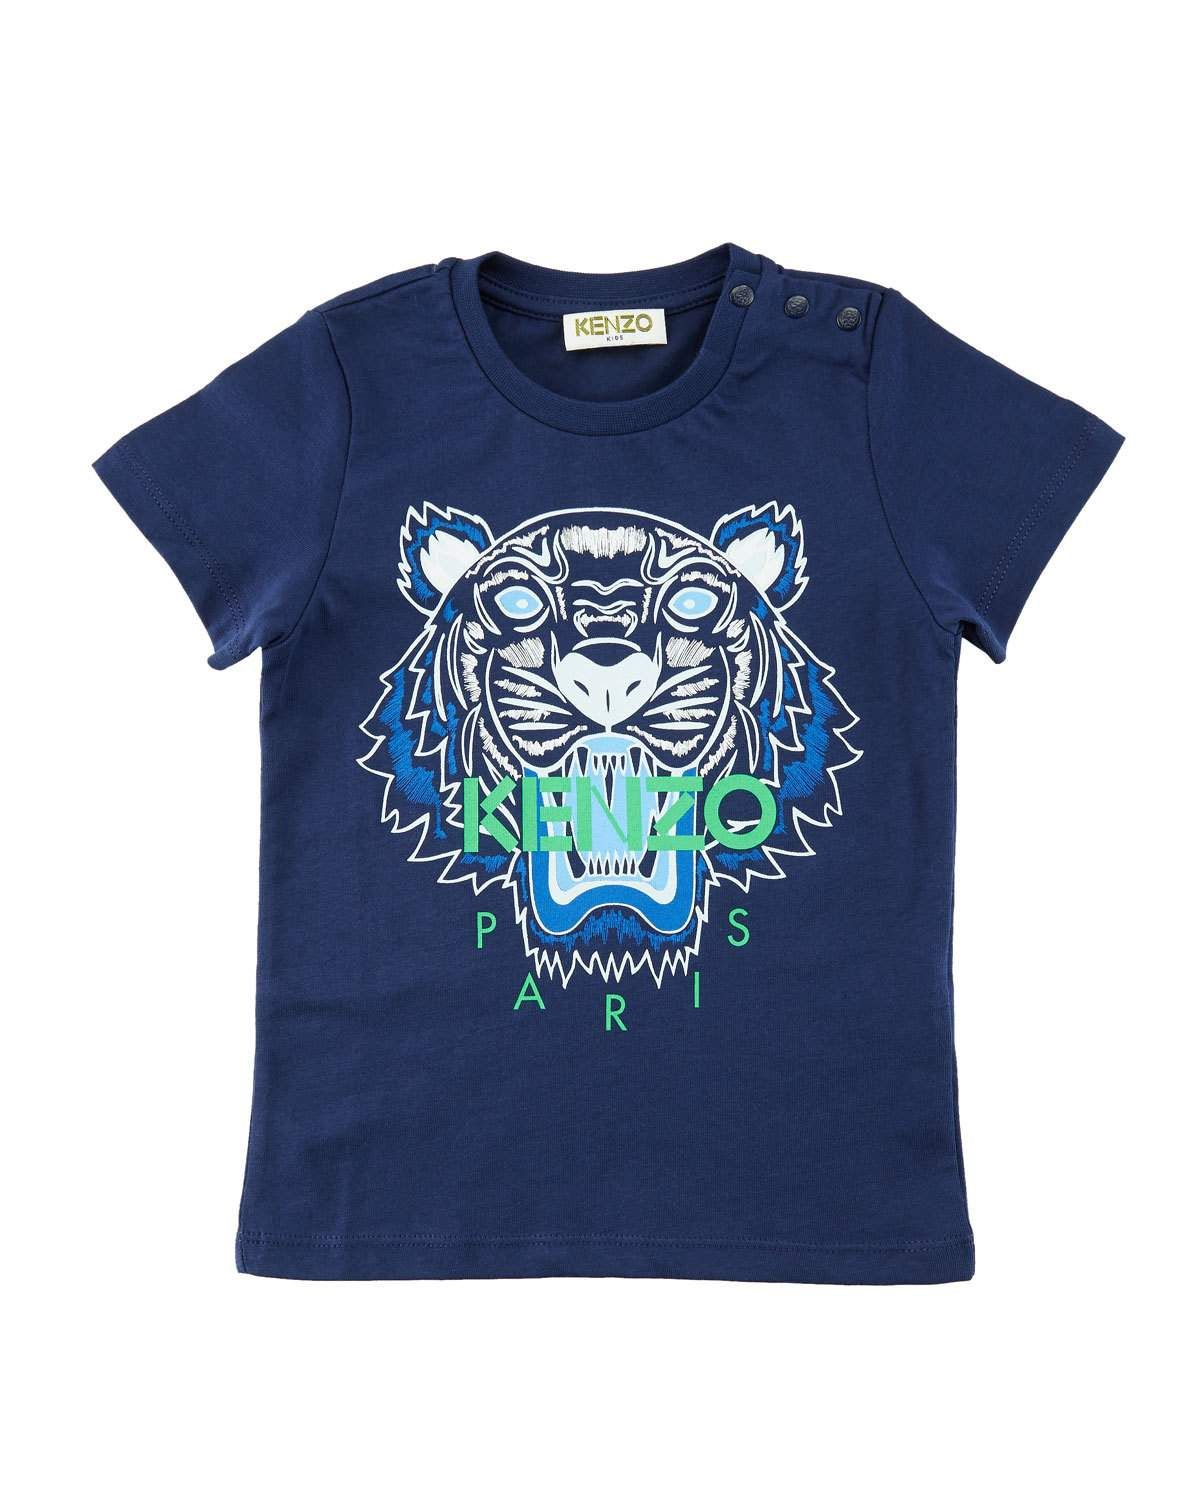 44bb4cad Kenzo Short-Sleeve Logo Tiger Tee, Size 6-18 Months | Products ...